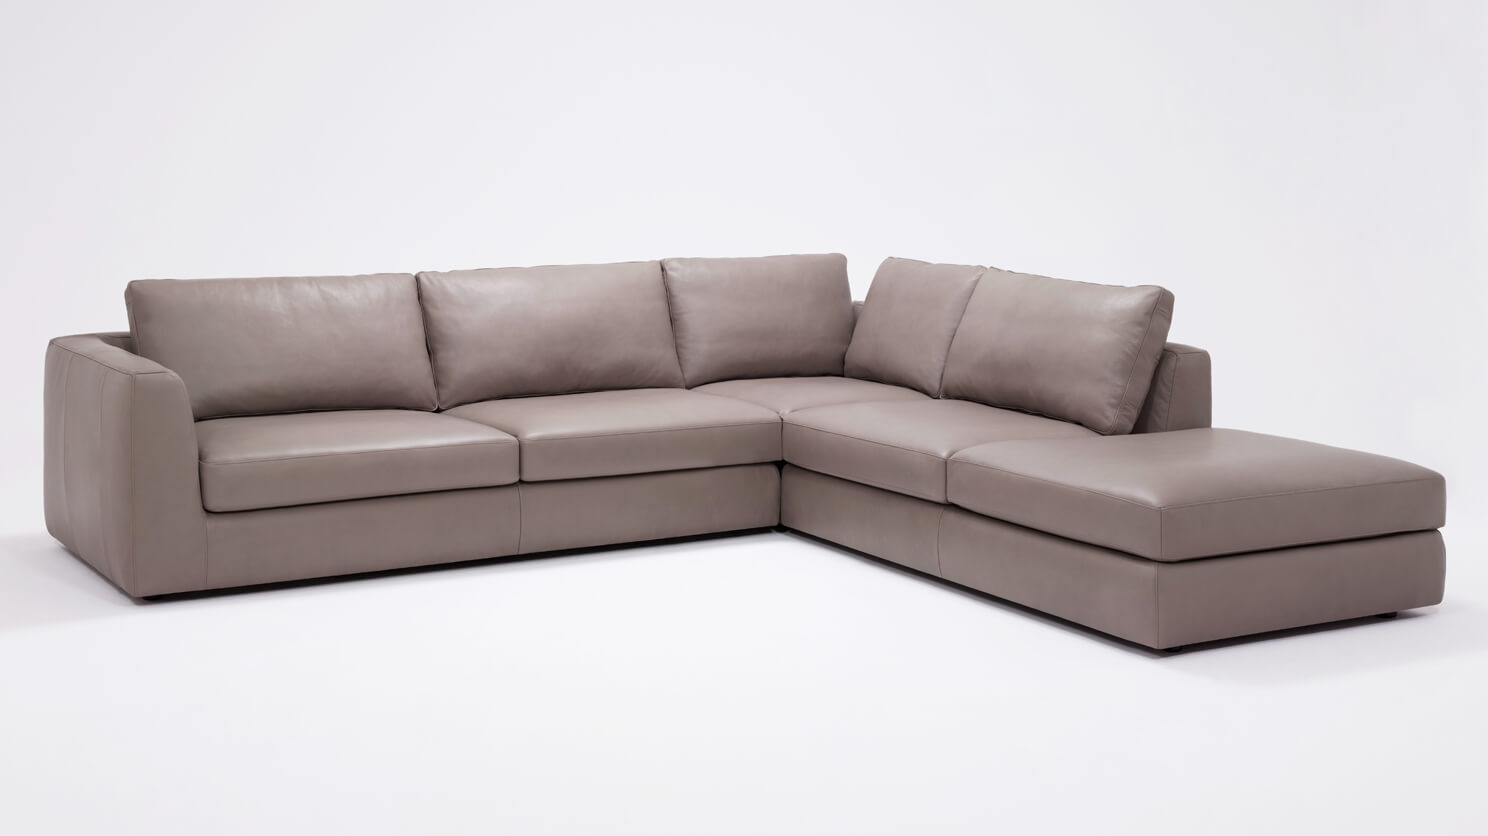 Delicieux Cello 3 Piece Sectional Sofa With Backless Chaise   Leather | EQ3